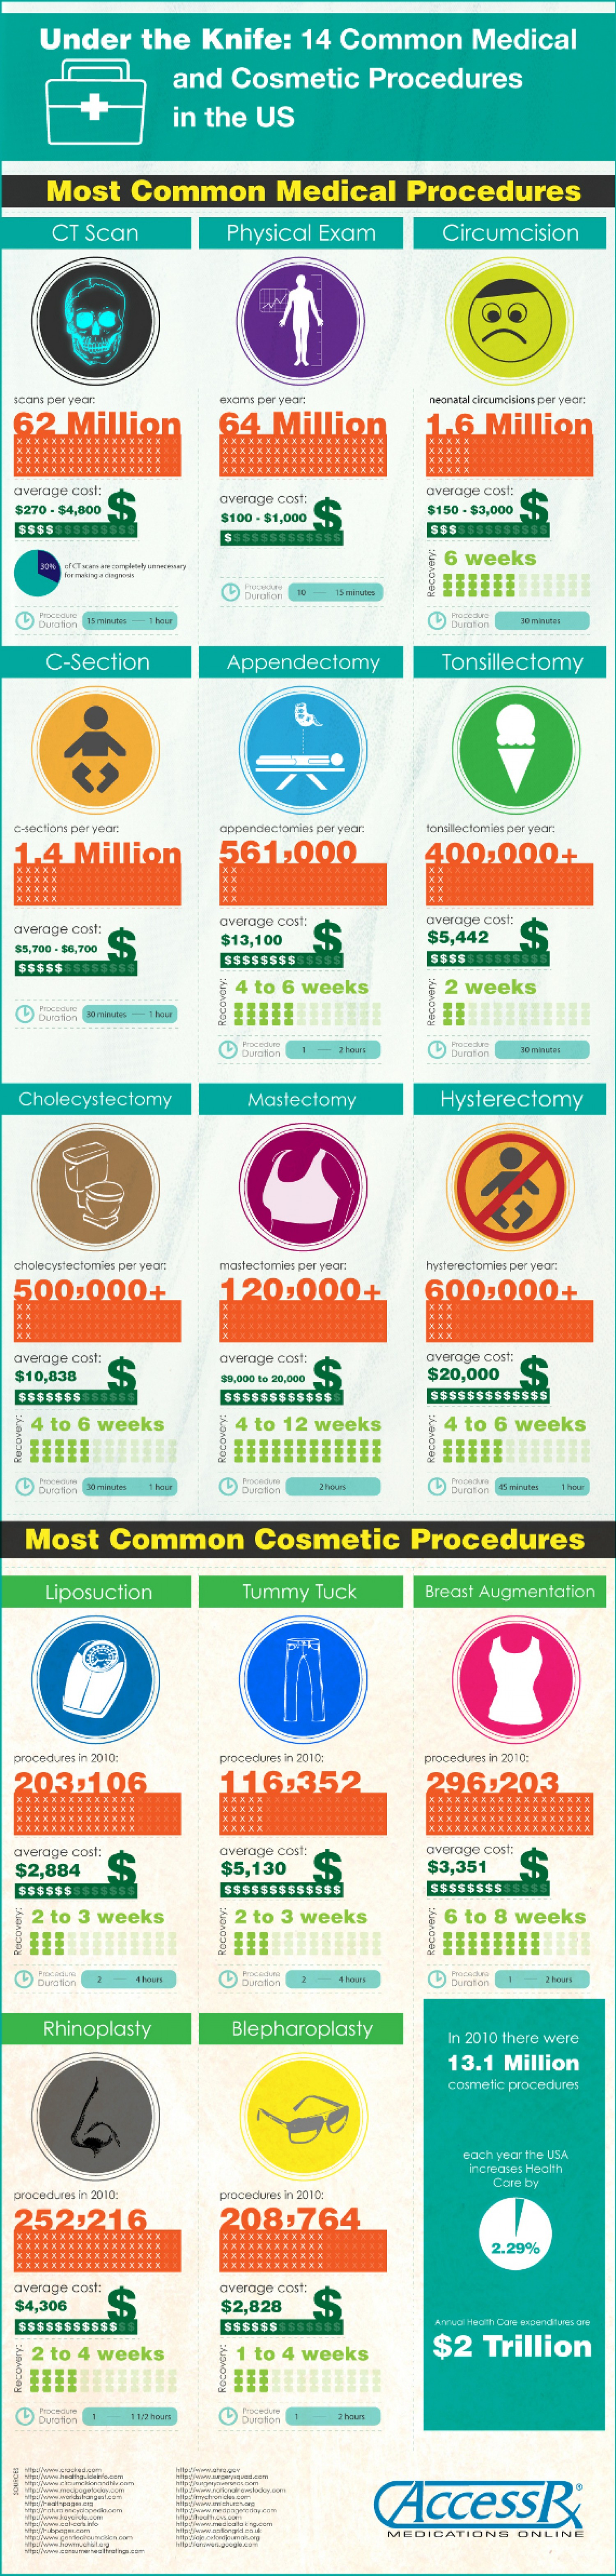 Under the knife- 14 common medical and cosmetic procedures in the US